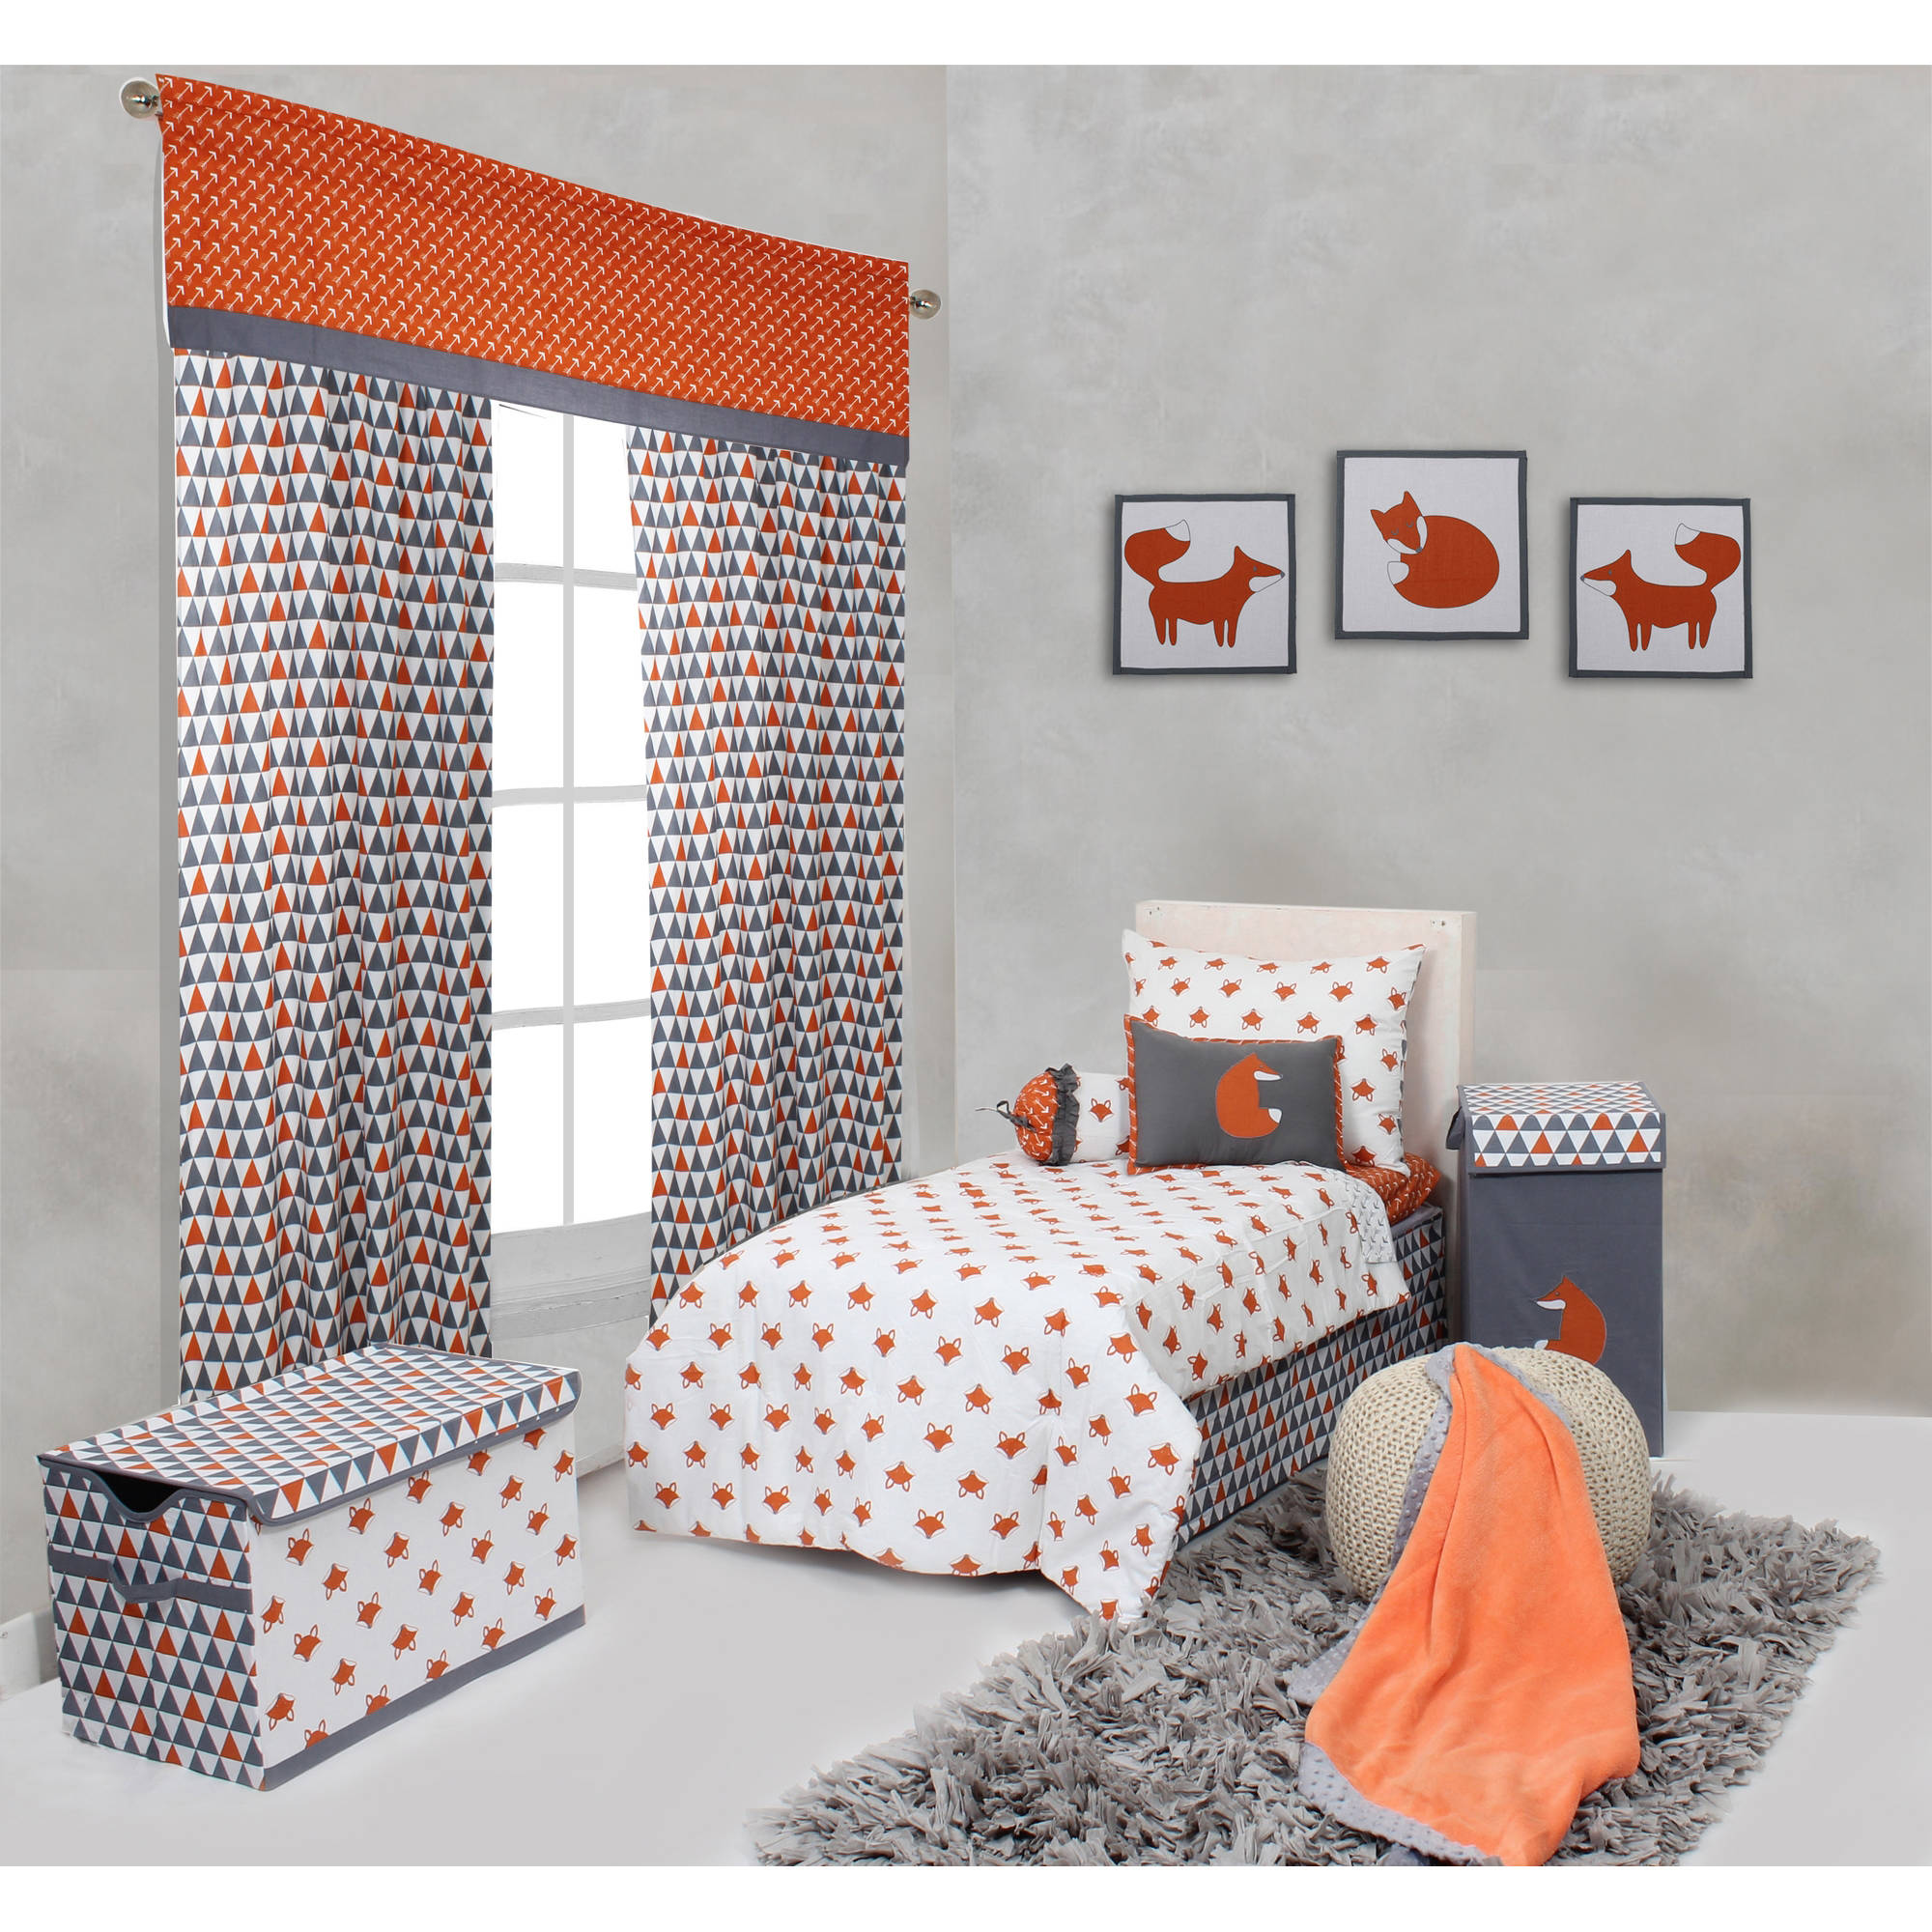 Bacati - Playful Foxes Orange/Gray 4-Piece Toddler Bedding Set 100% Cotton percale fabrics